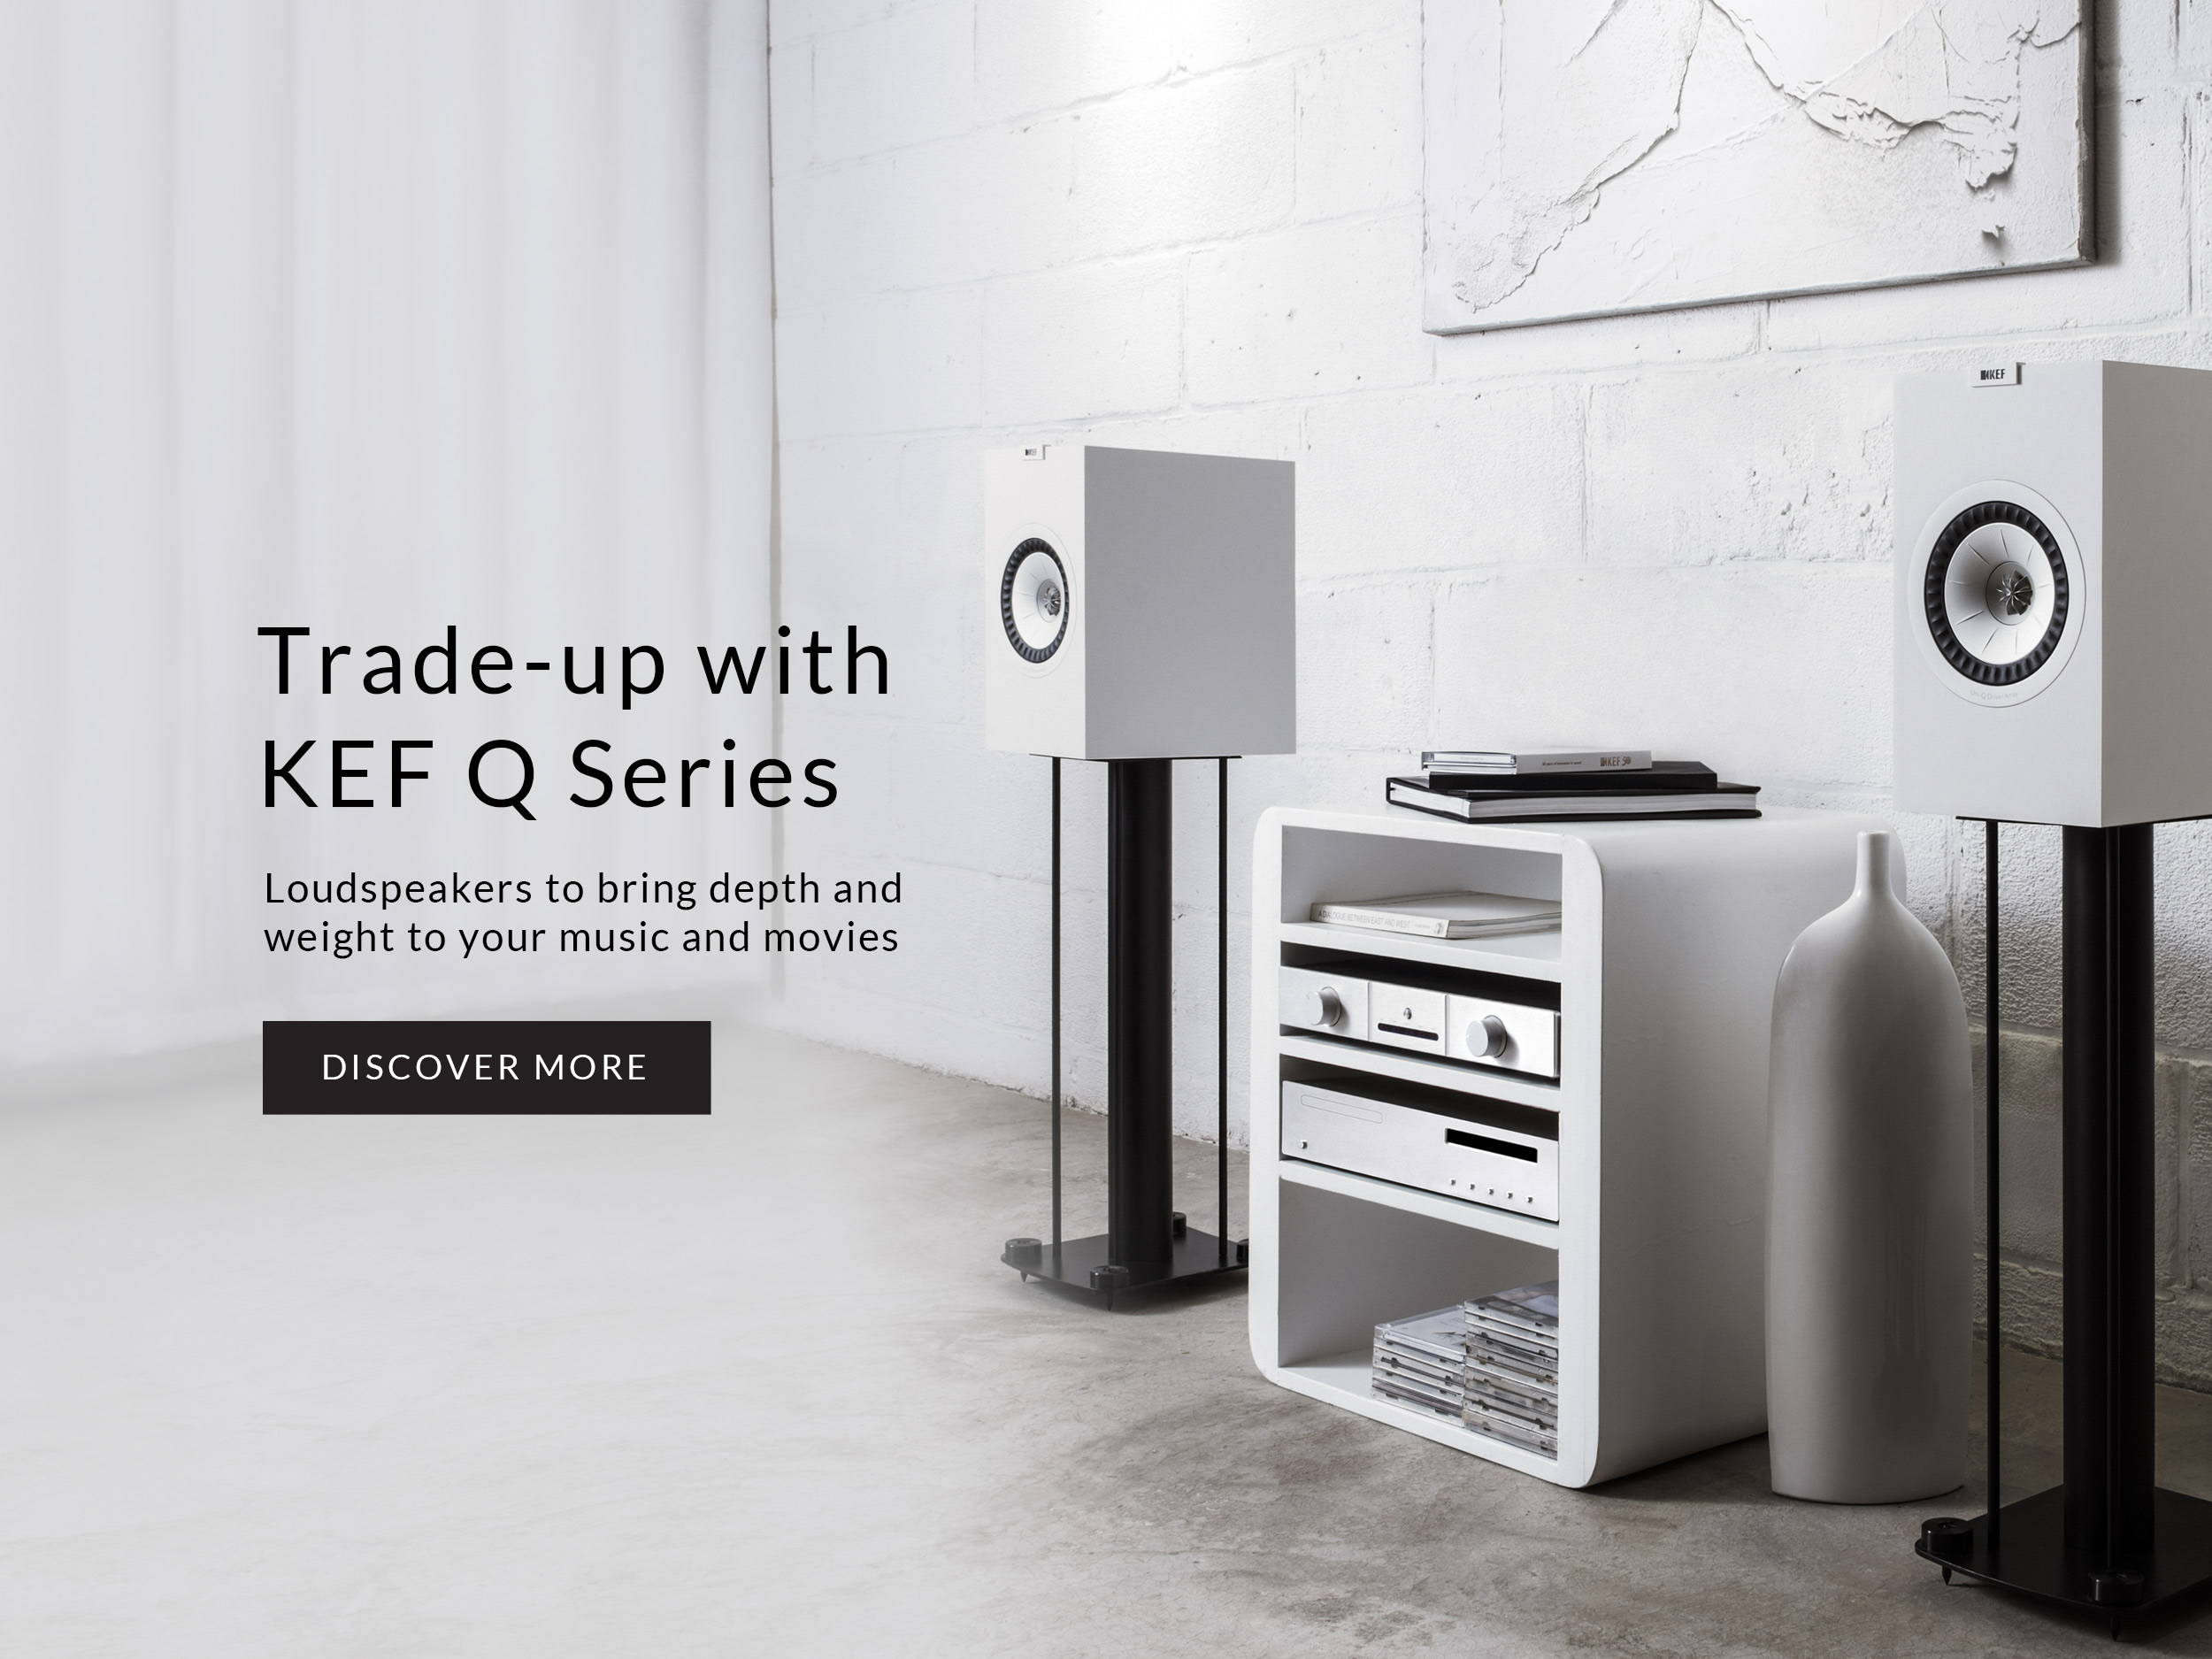 Trade-up with KEF Q series